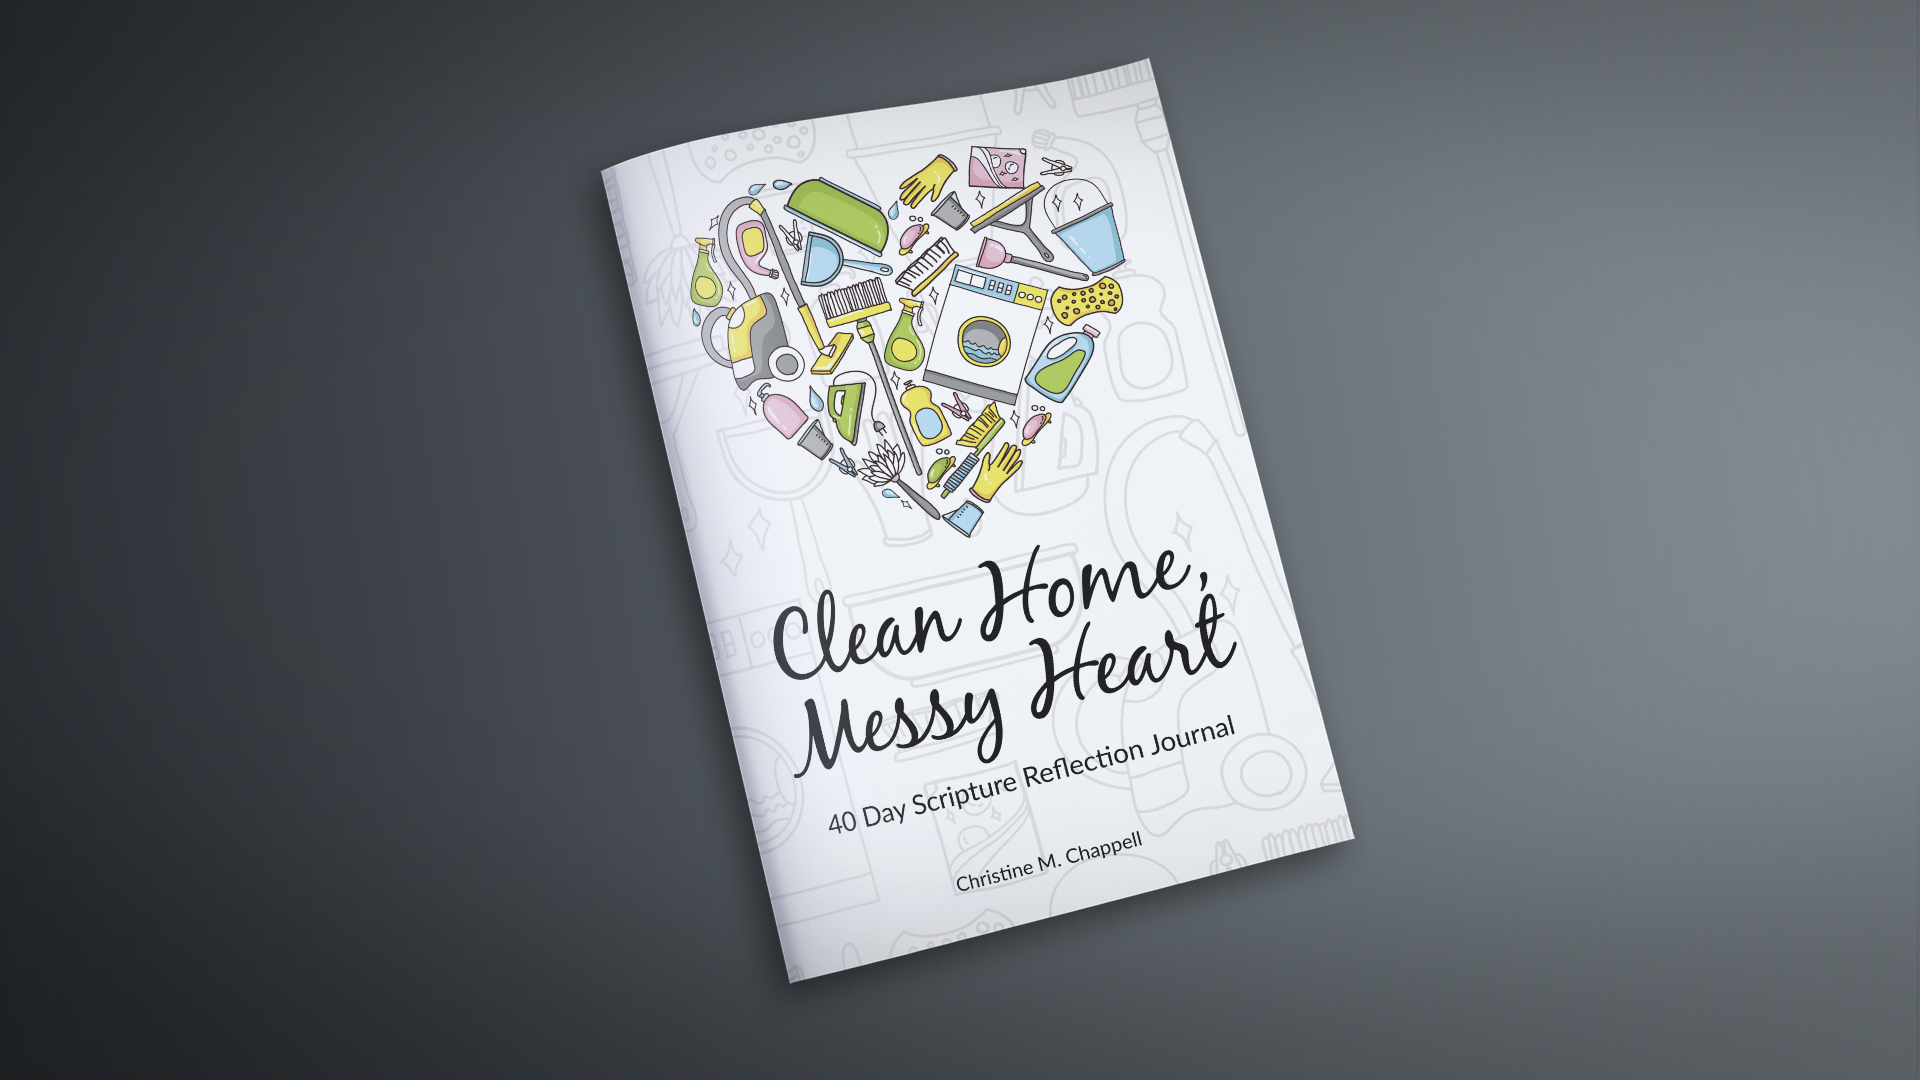 Clean Home, Messy Heart Reflection Journal Information